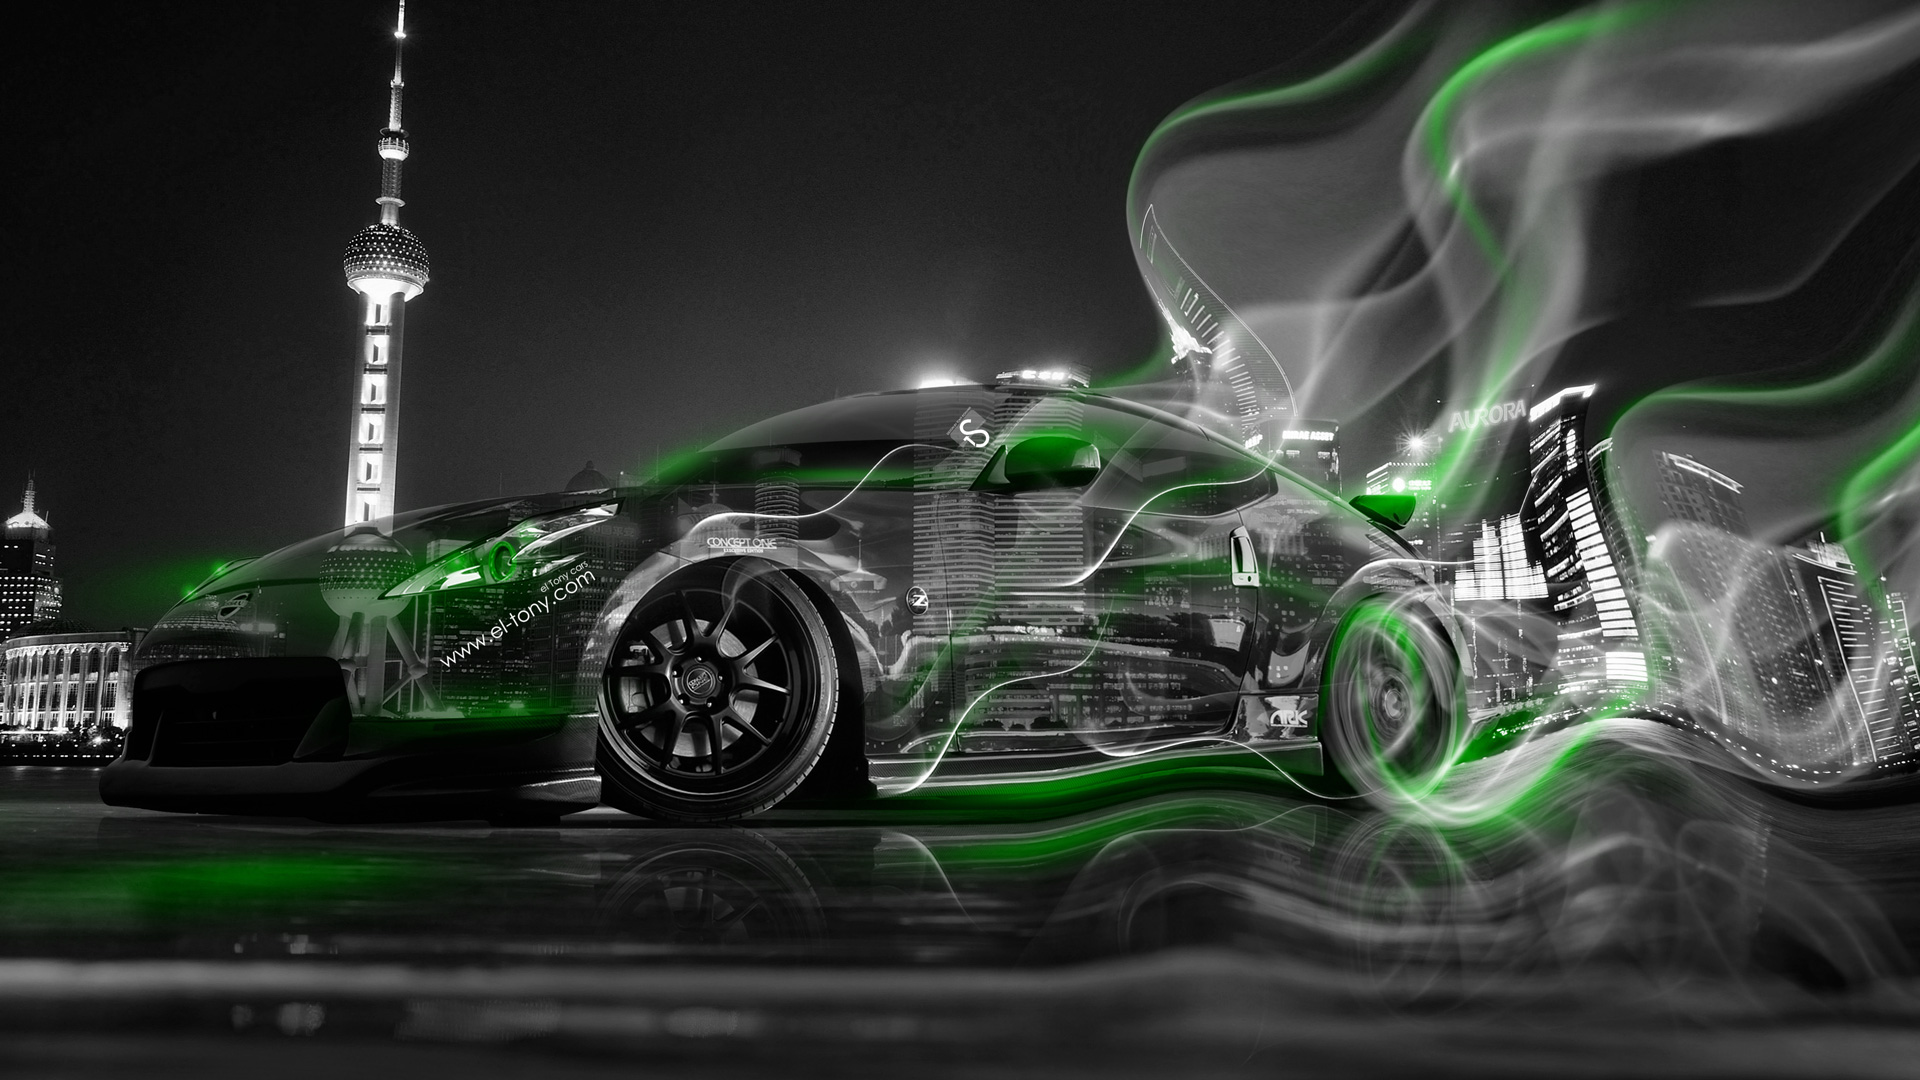 Nissan 370Z JDM Crystal City Smoke Drift Car 2014 El Tony 1920x1080